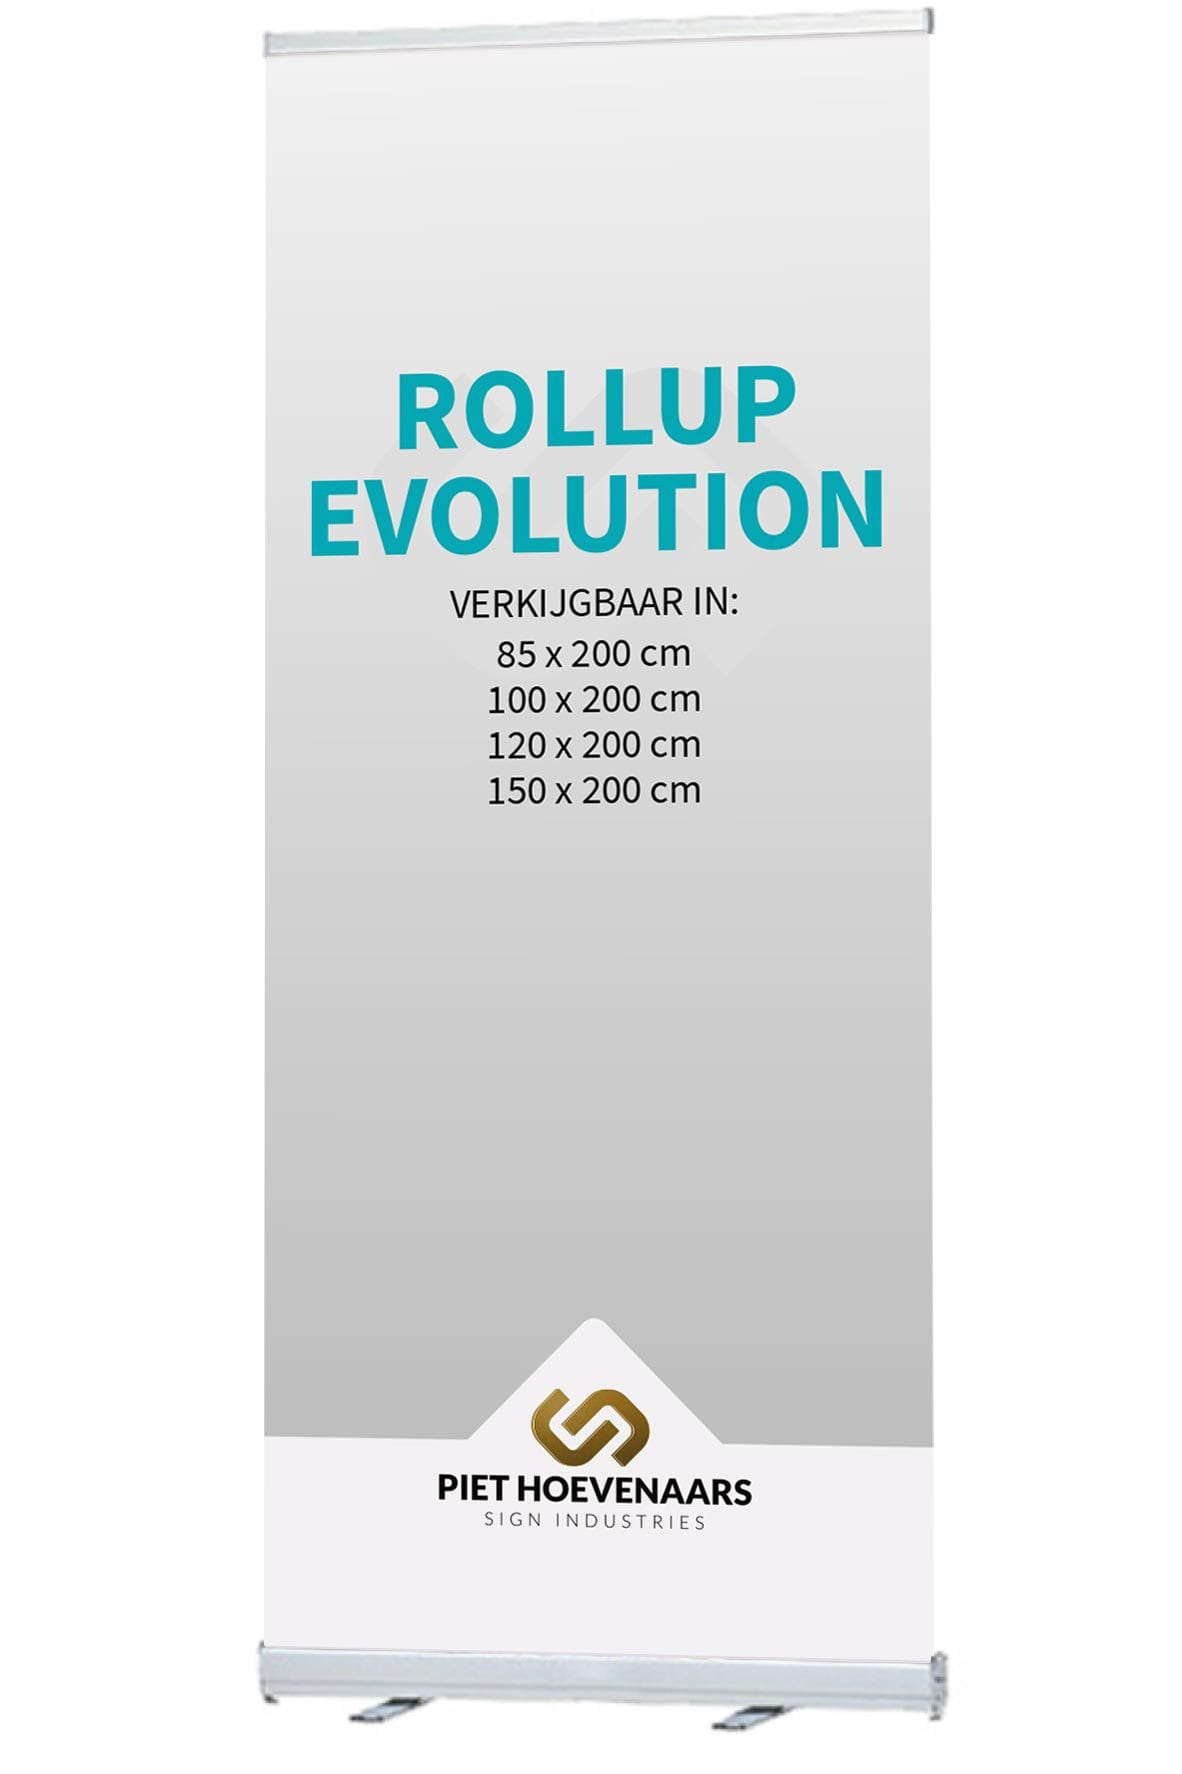 Rollup Evolution